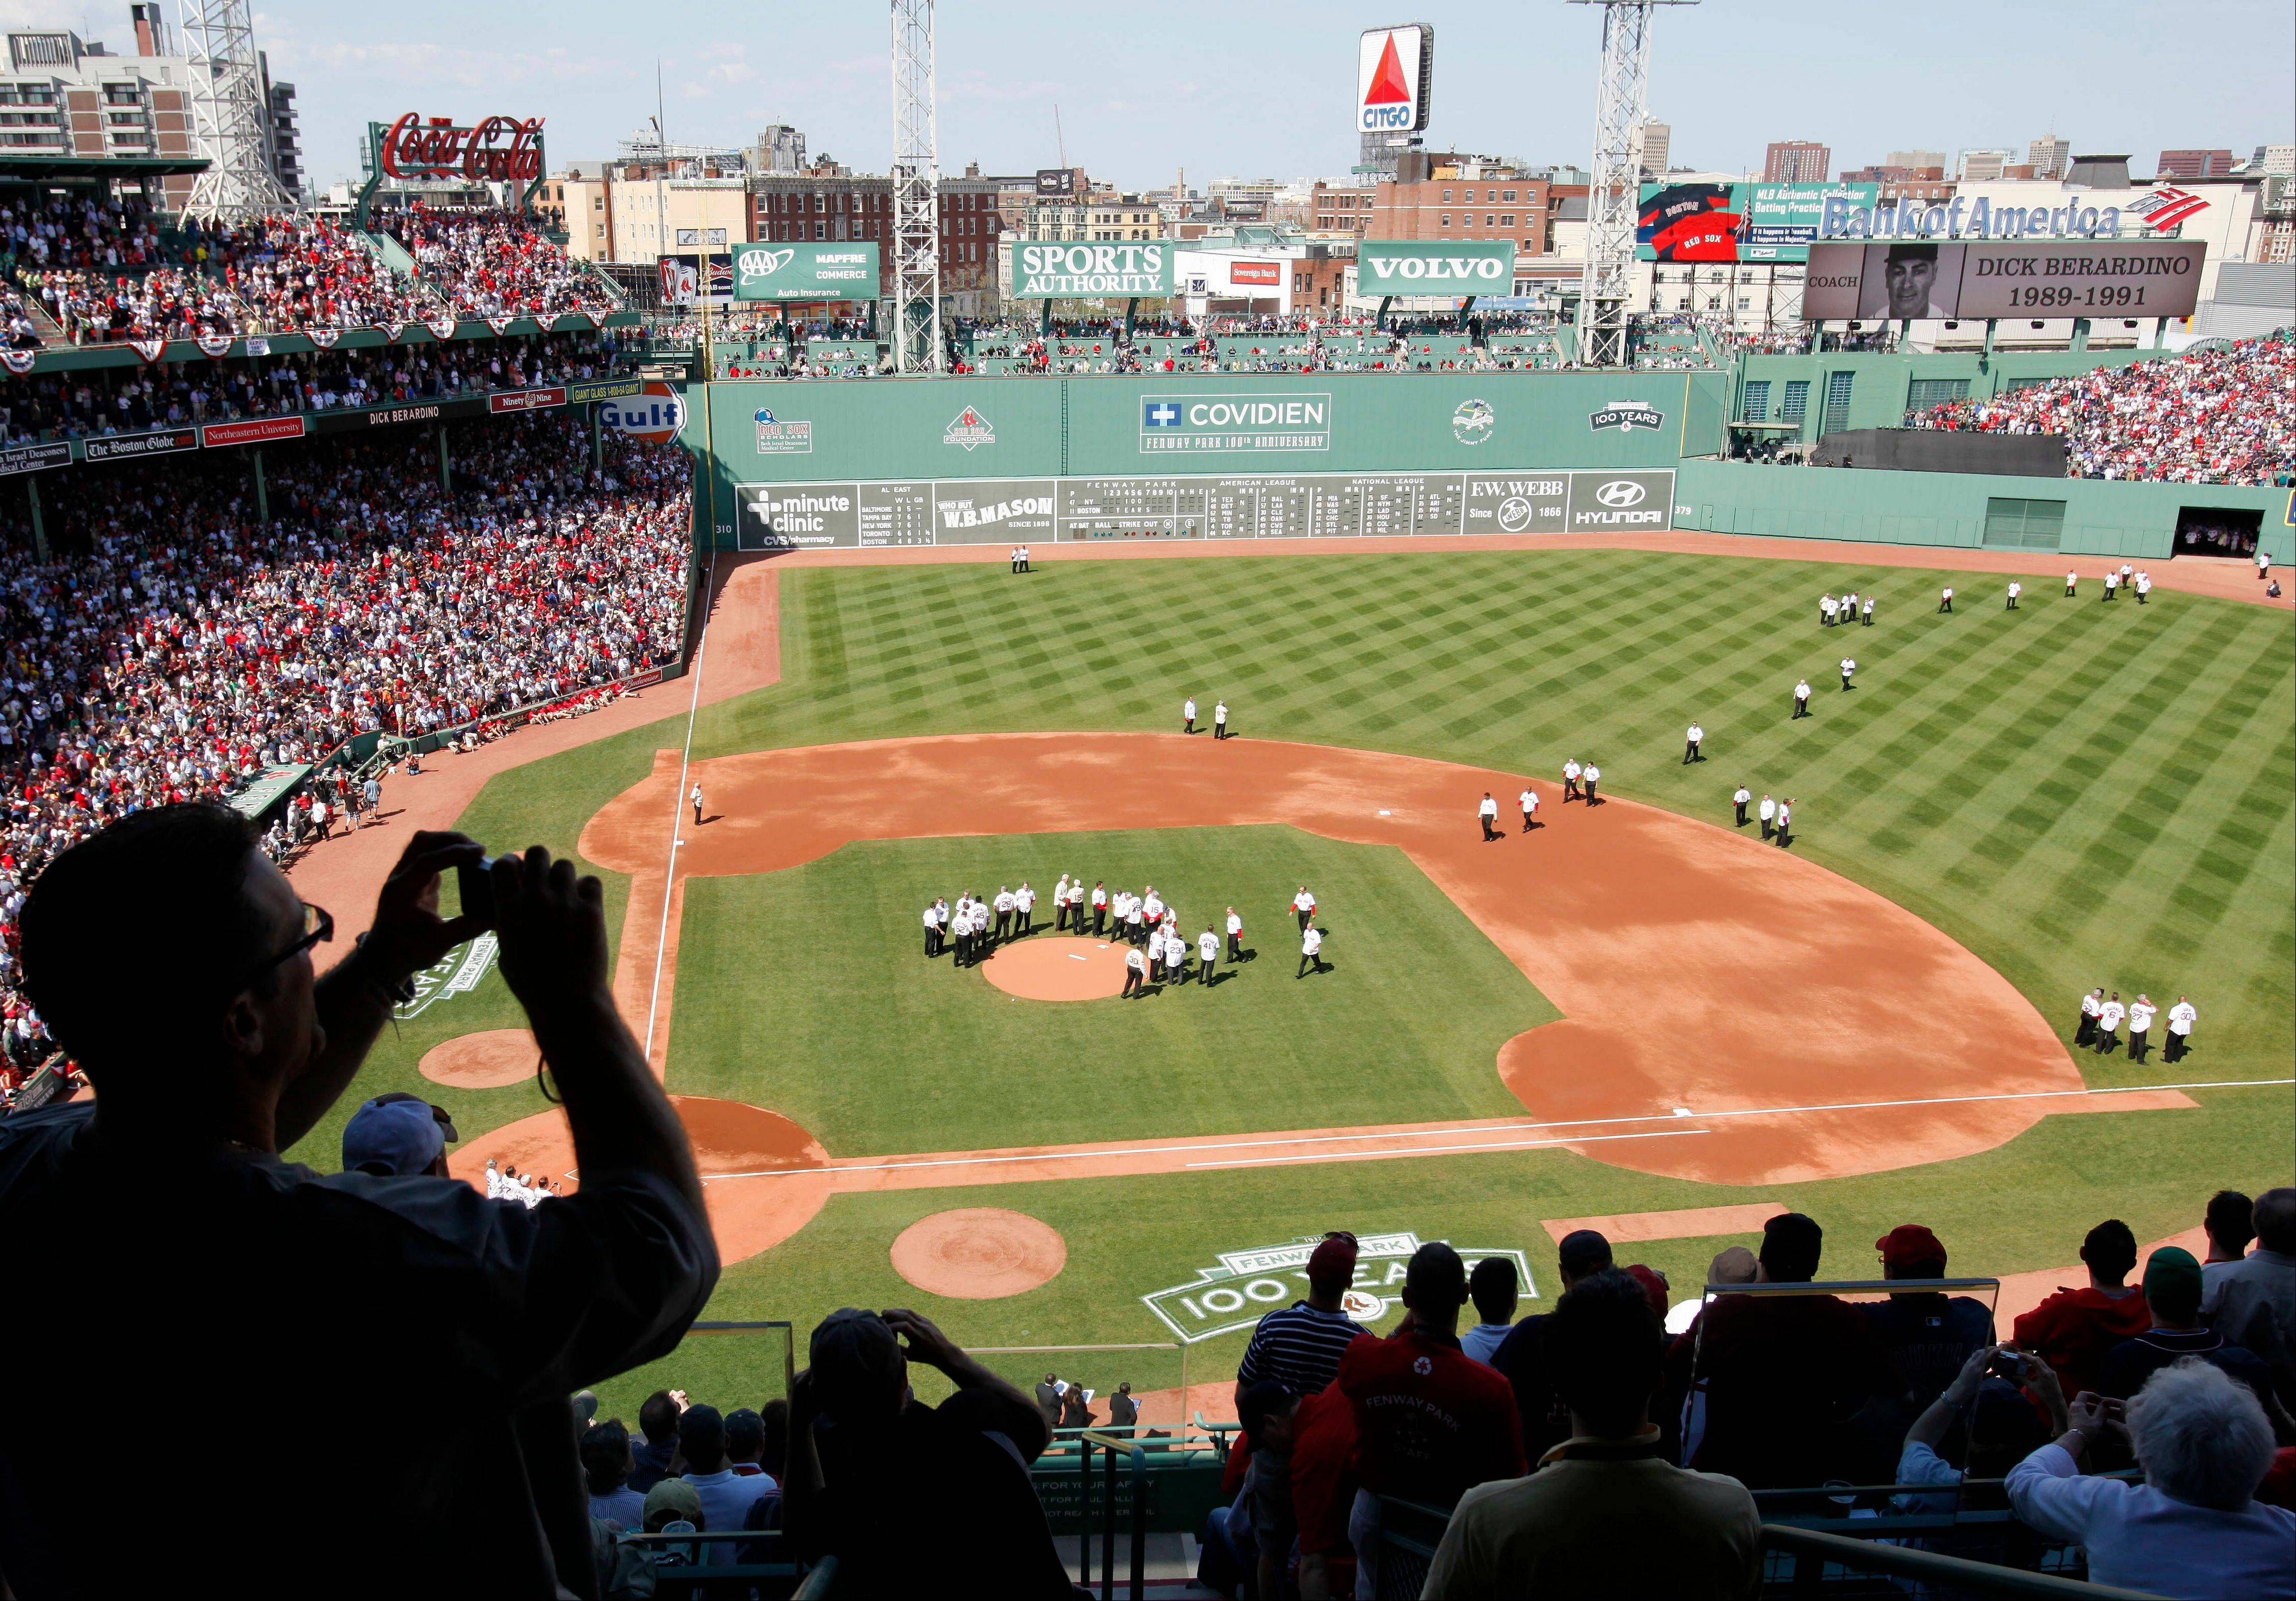 What the Boston Red Sox have accomplished with Fenway Park, which celebrated its 100th anniversary Friday in a special ceremony, is a good blueprint for the Cubs and Wrigley Field, says baseball columnist Matt Spiegel. Boston has been able to generate more revenue and put it back into the team, a formula that could help the Cubs.